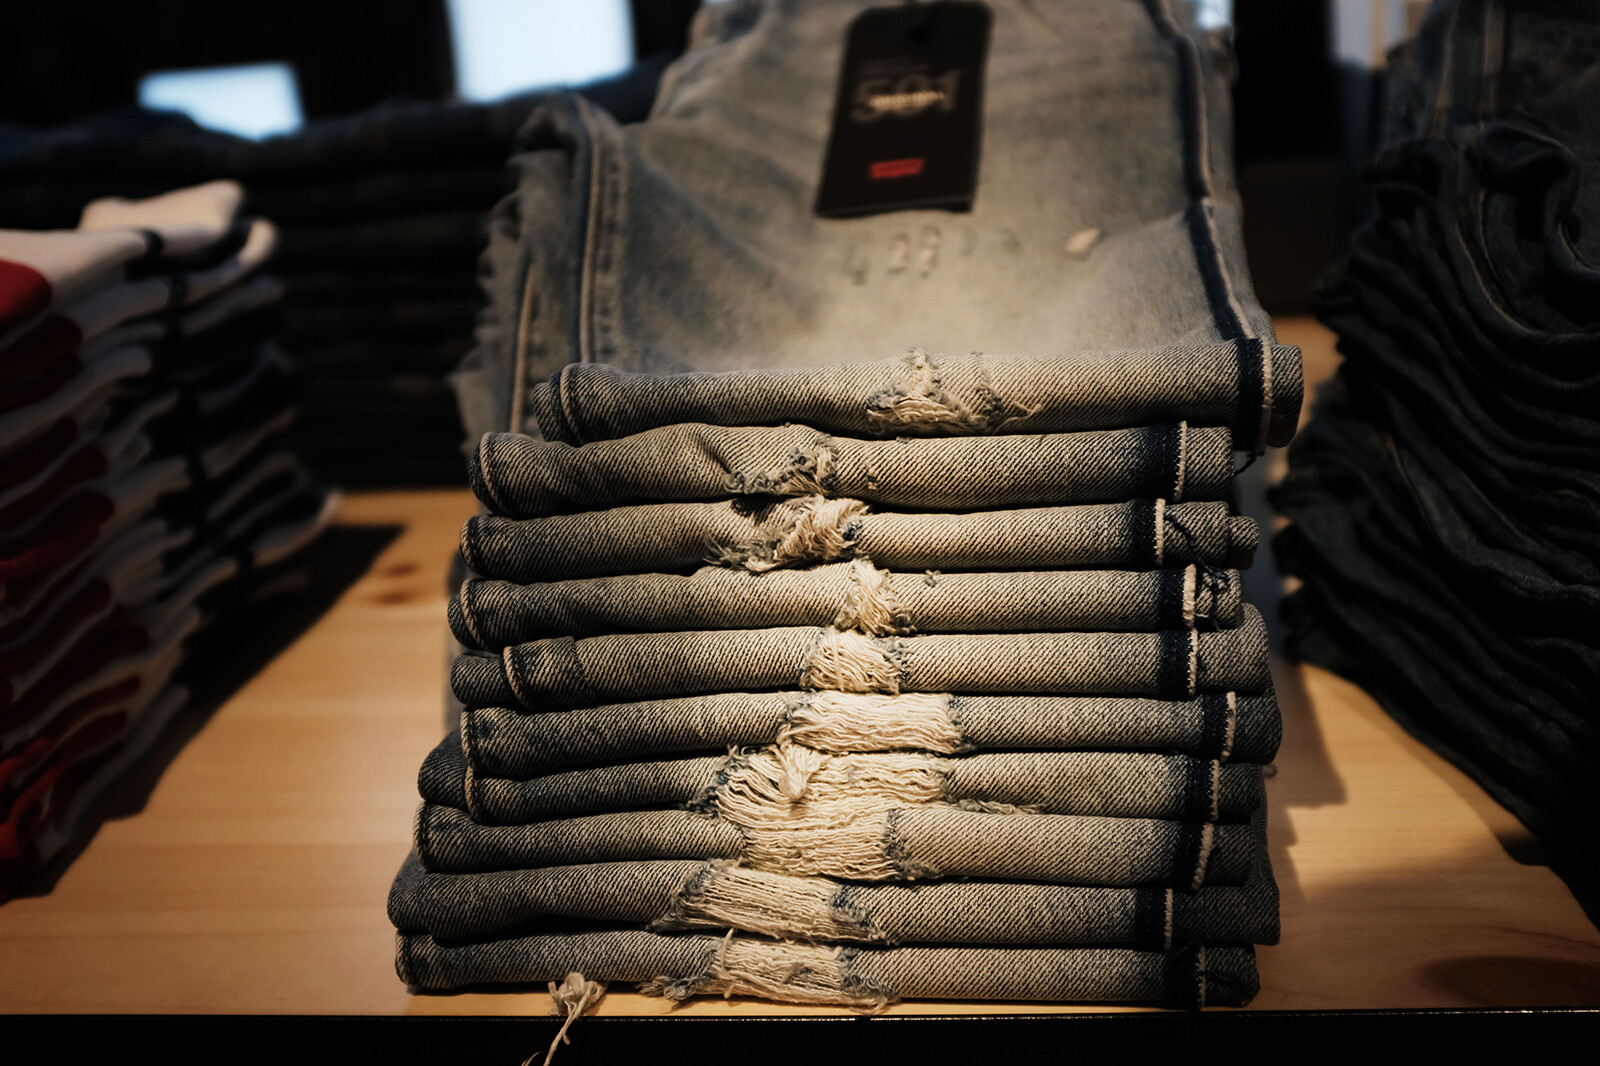 T-shirts and jeans may get more expensive as cotton prices hit 10-year high